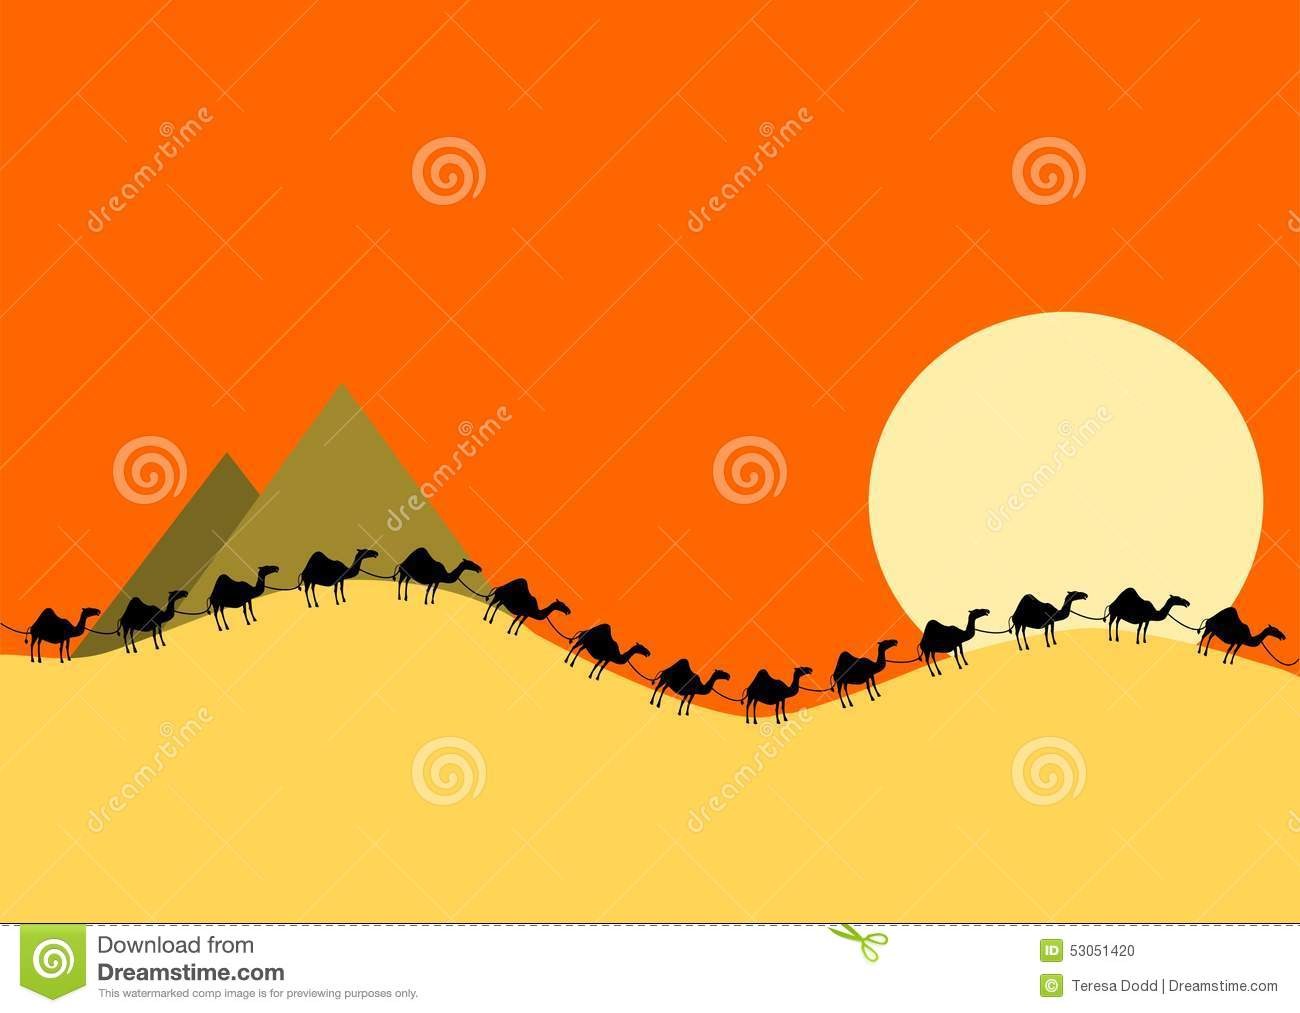 Camel Train clipart #11, Download drawings